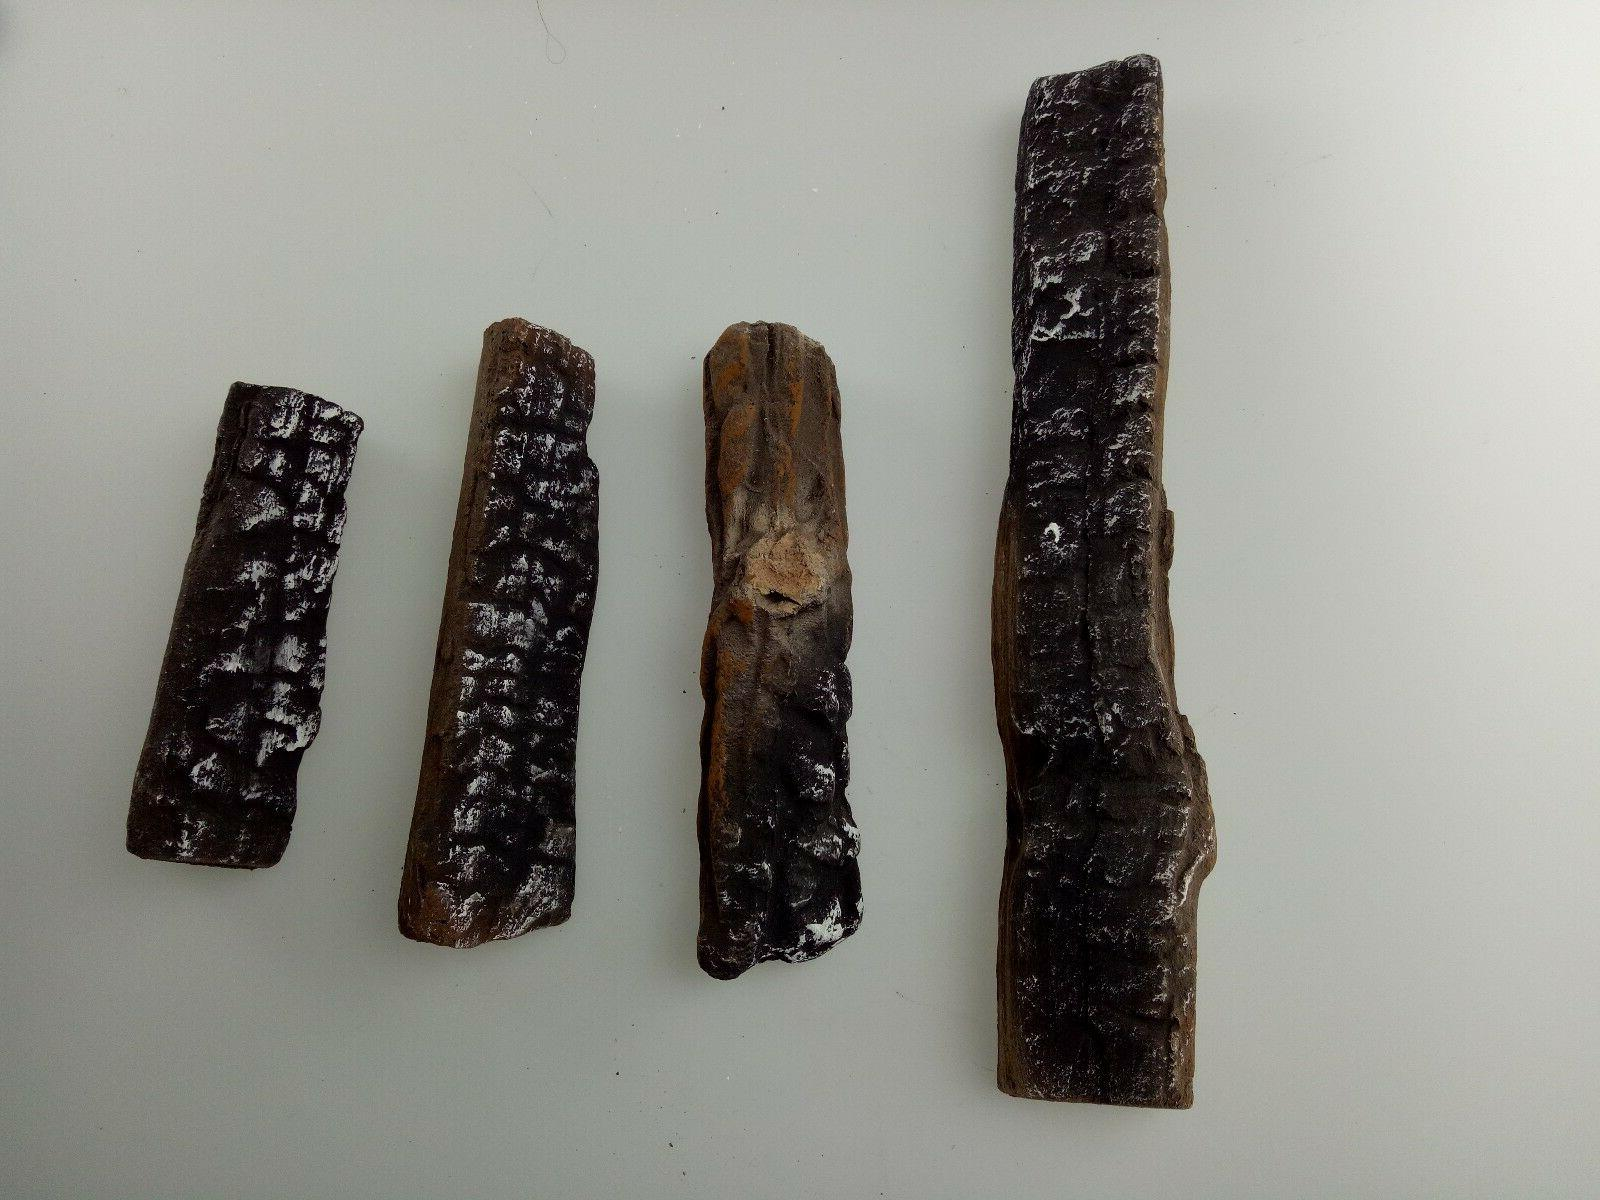 4 Pcs Fireplace Ceramic Logs for Gas Ethanol Fireplaces & St